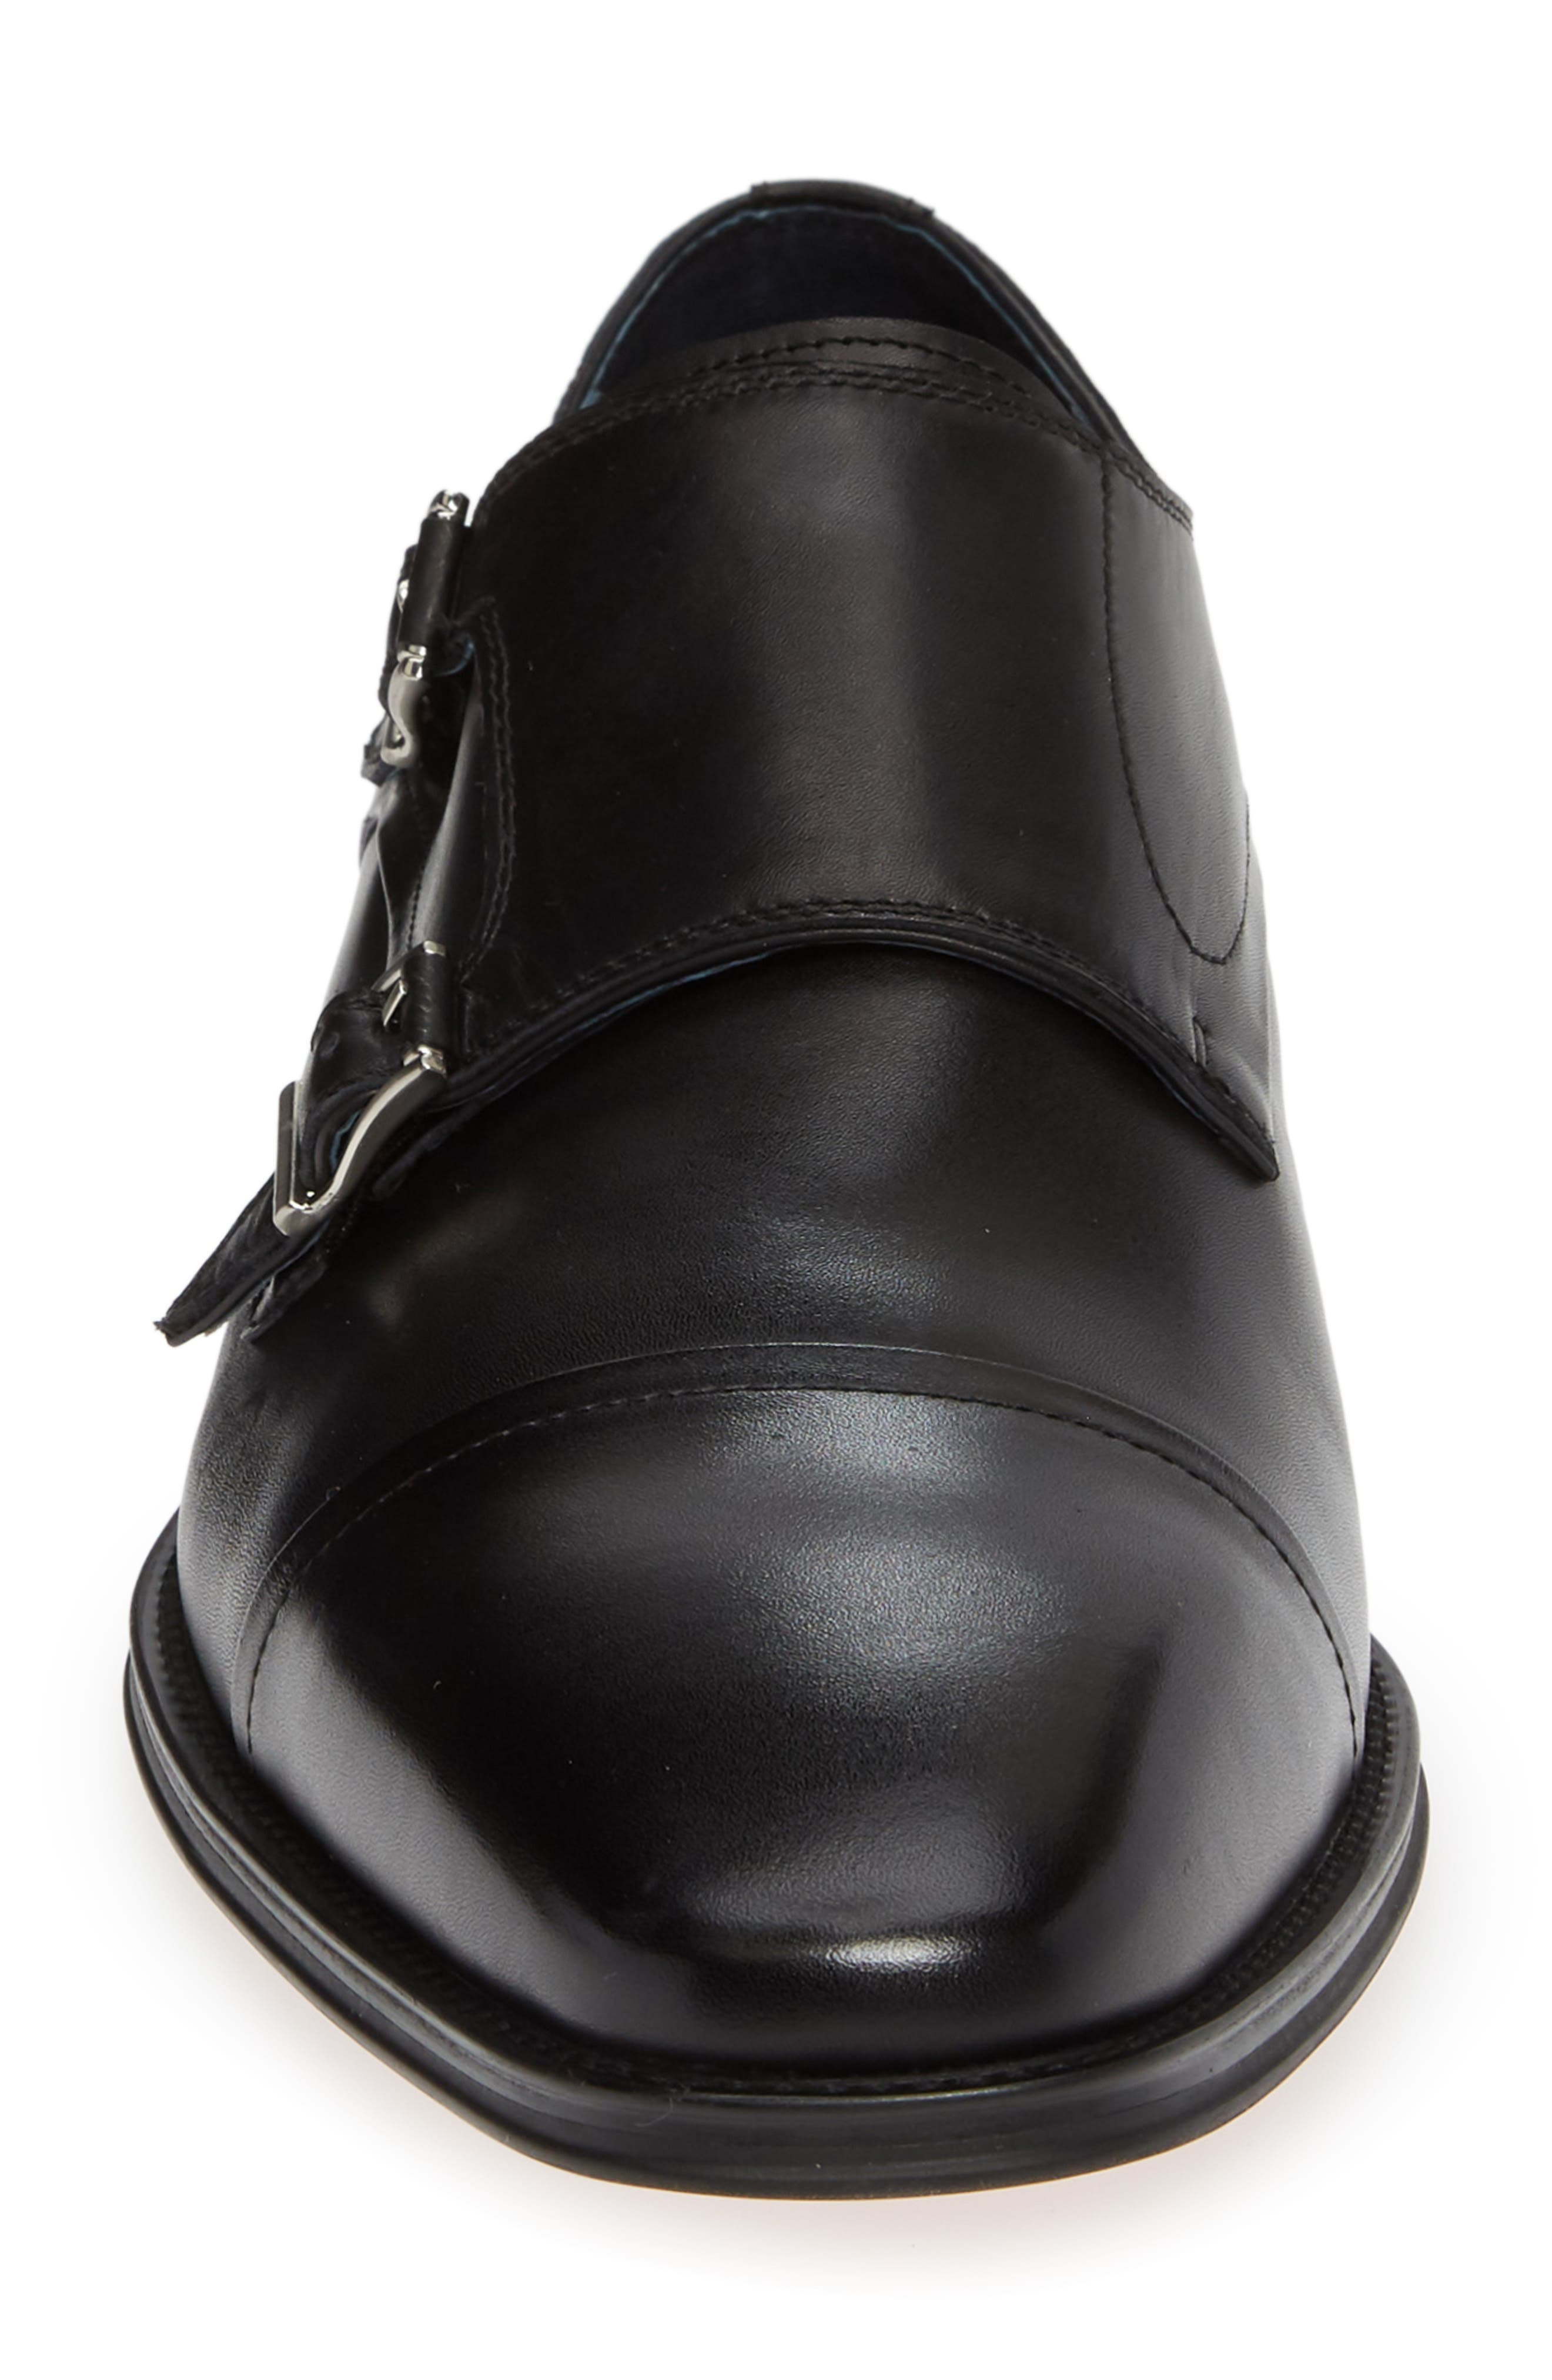 Mario Double Monk Strap Shoe,                             Alternate thumbnail 4, color,                             BLACK LEATHER